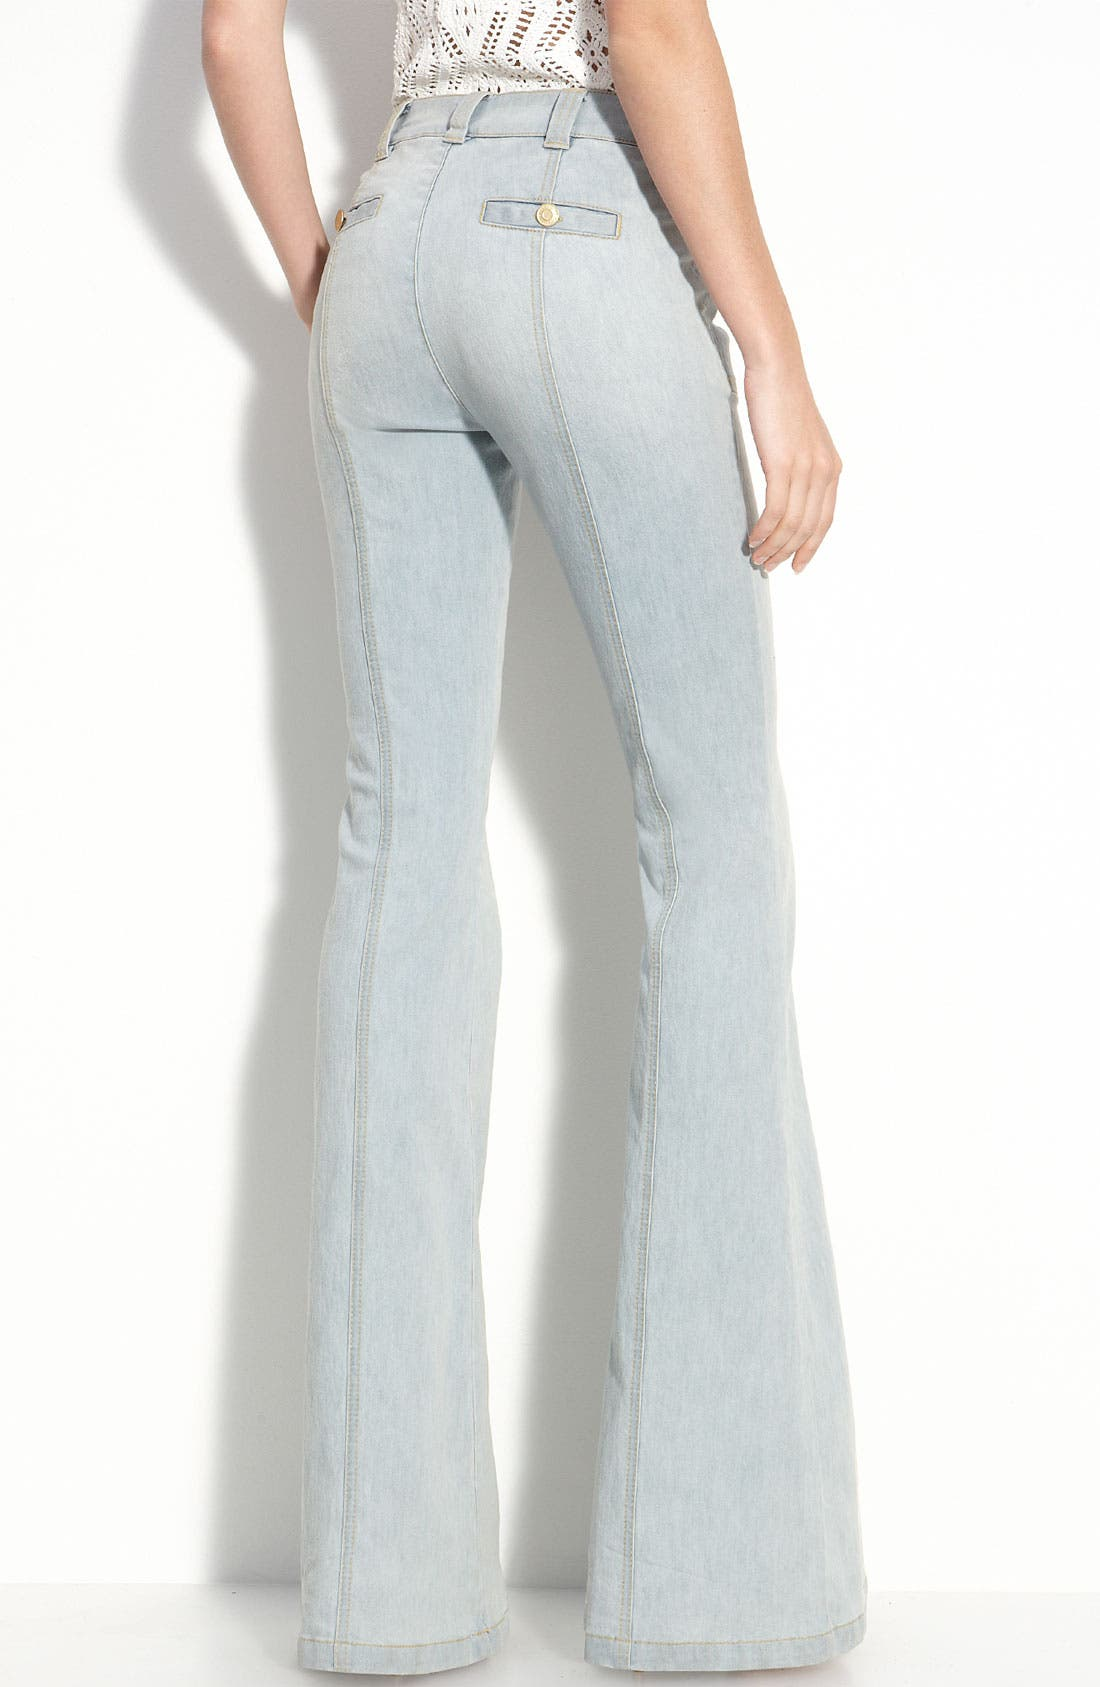 Main Image - Rachel Zoe 'Campbell' Flare Leg Stretch Jeans (Long)